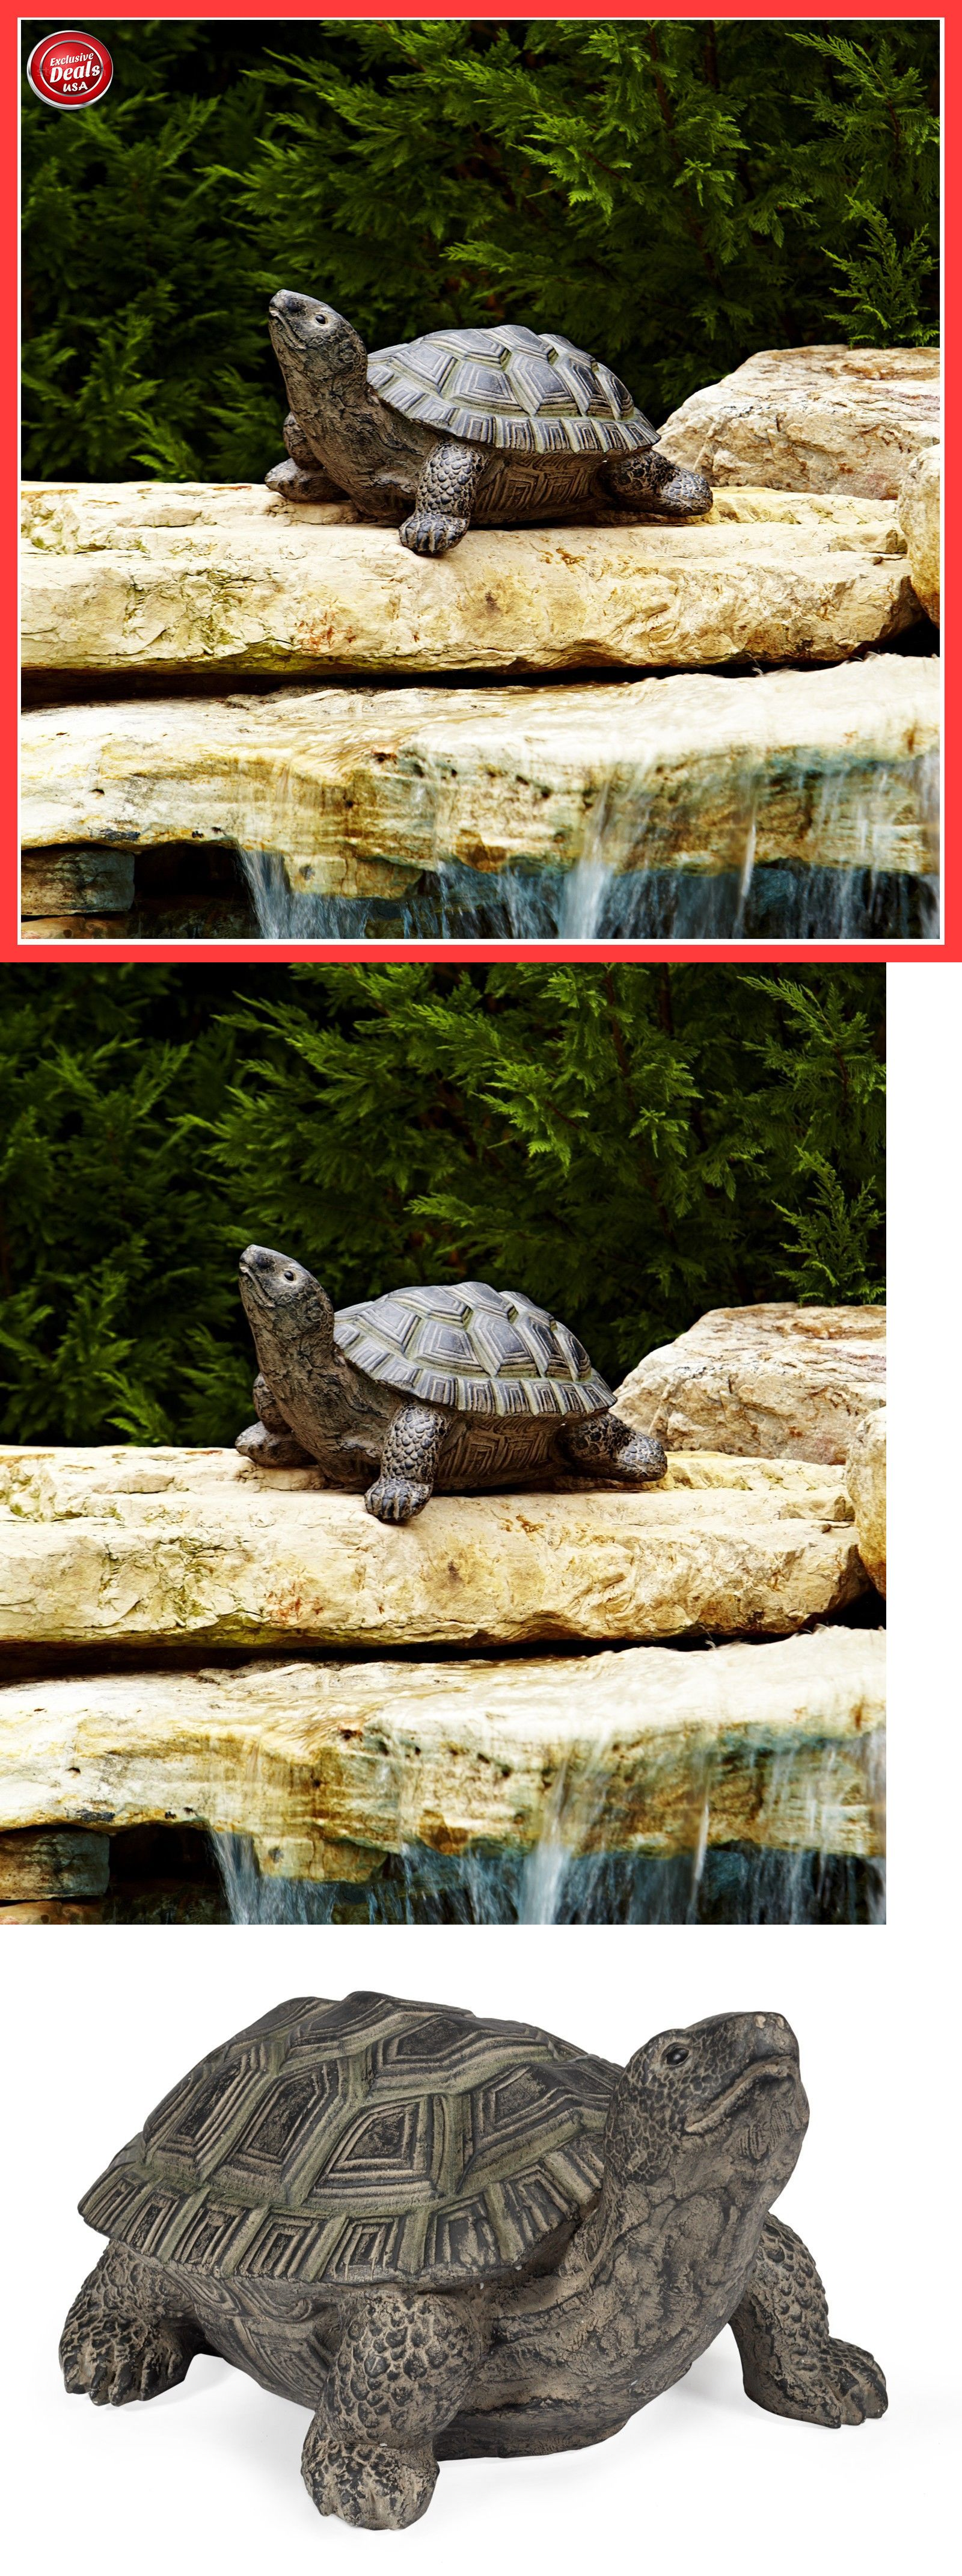 Outdoor decor statues - Statues And Lawn Ornaments 29511 Large Turtle Statue Garden Outdoor Decor Yard Patio Sculpture Bronze